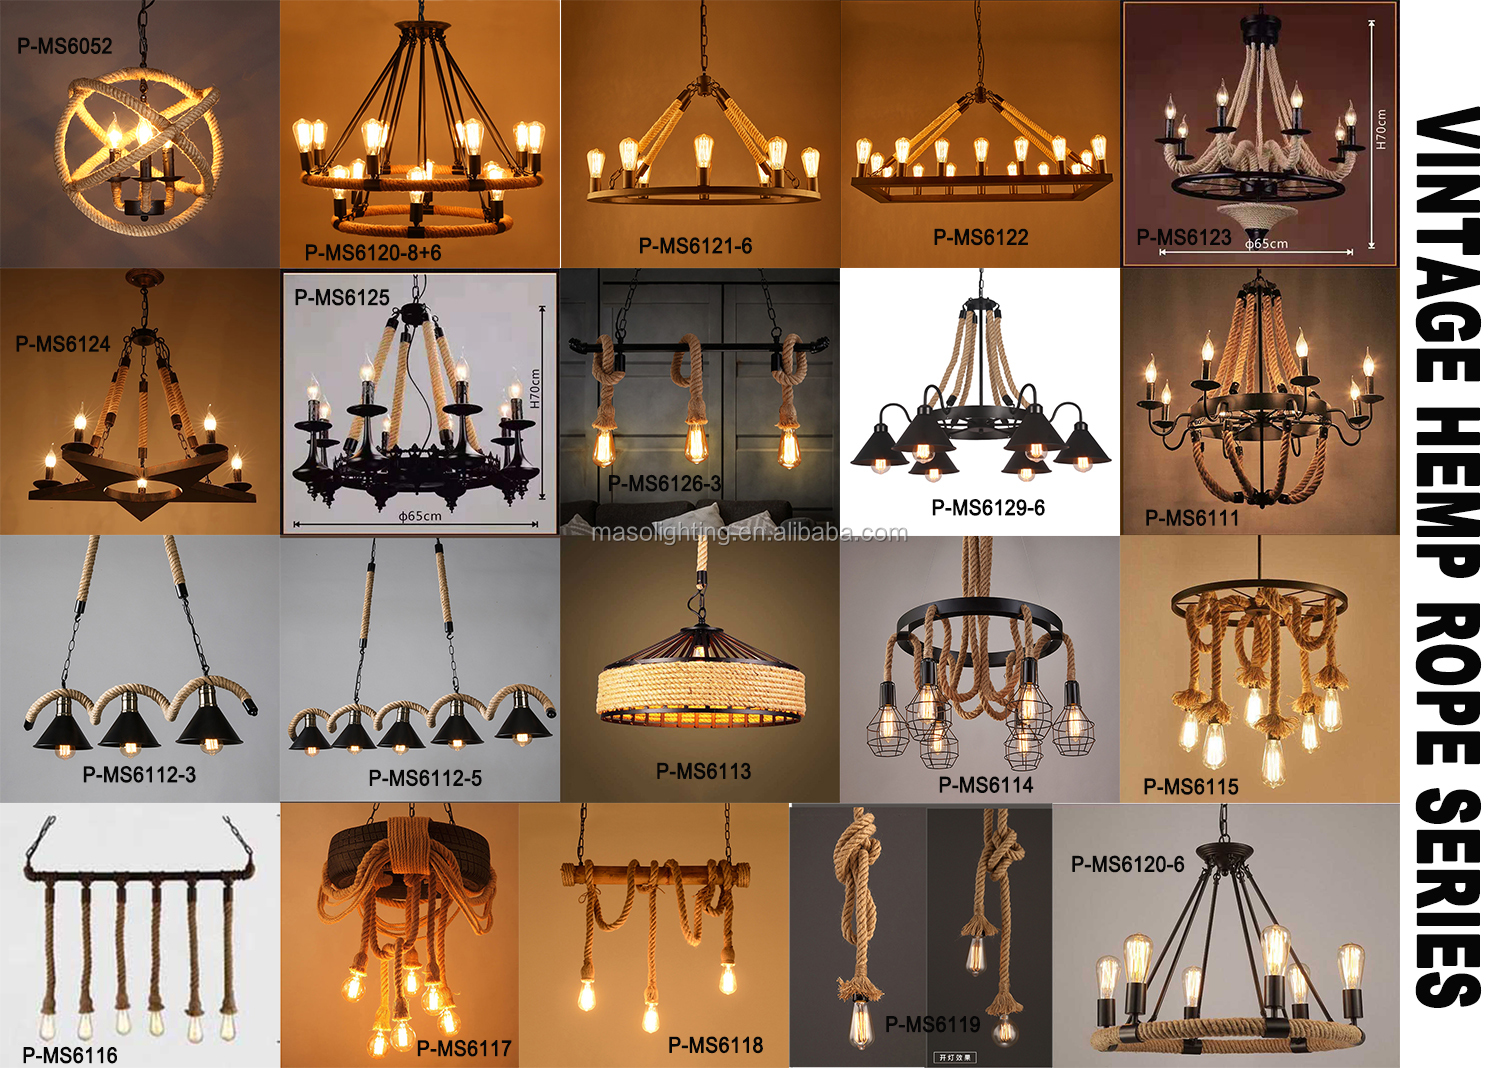 Round Shade Industrial pendant light hand woven chandelier rope bar lighting decor wrought iron ceiling lighting